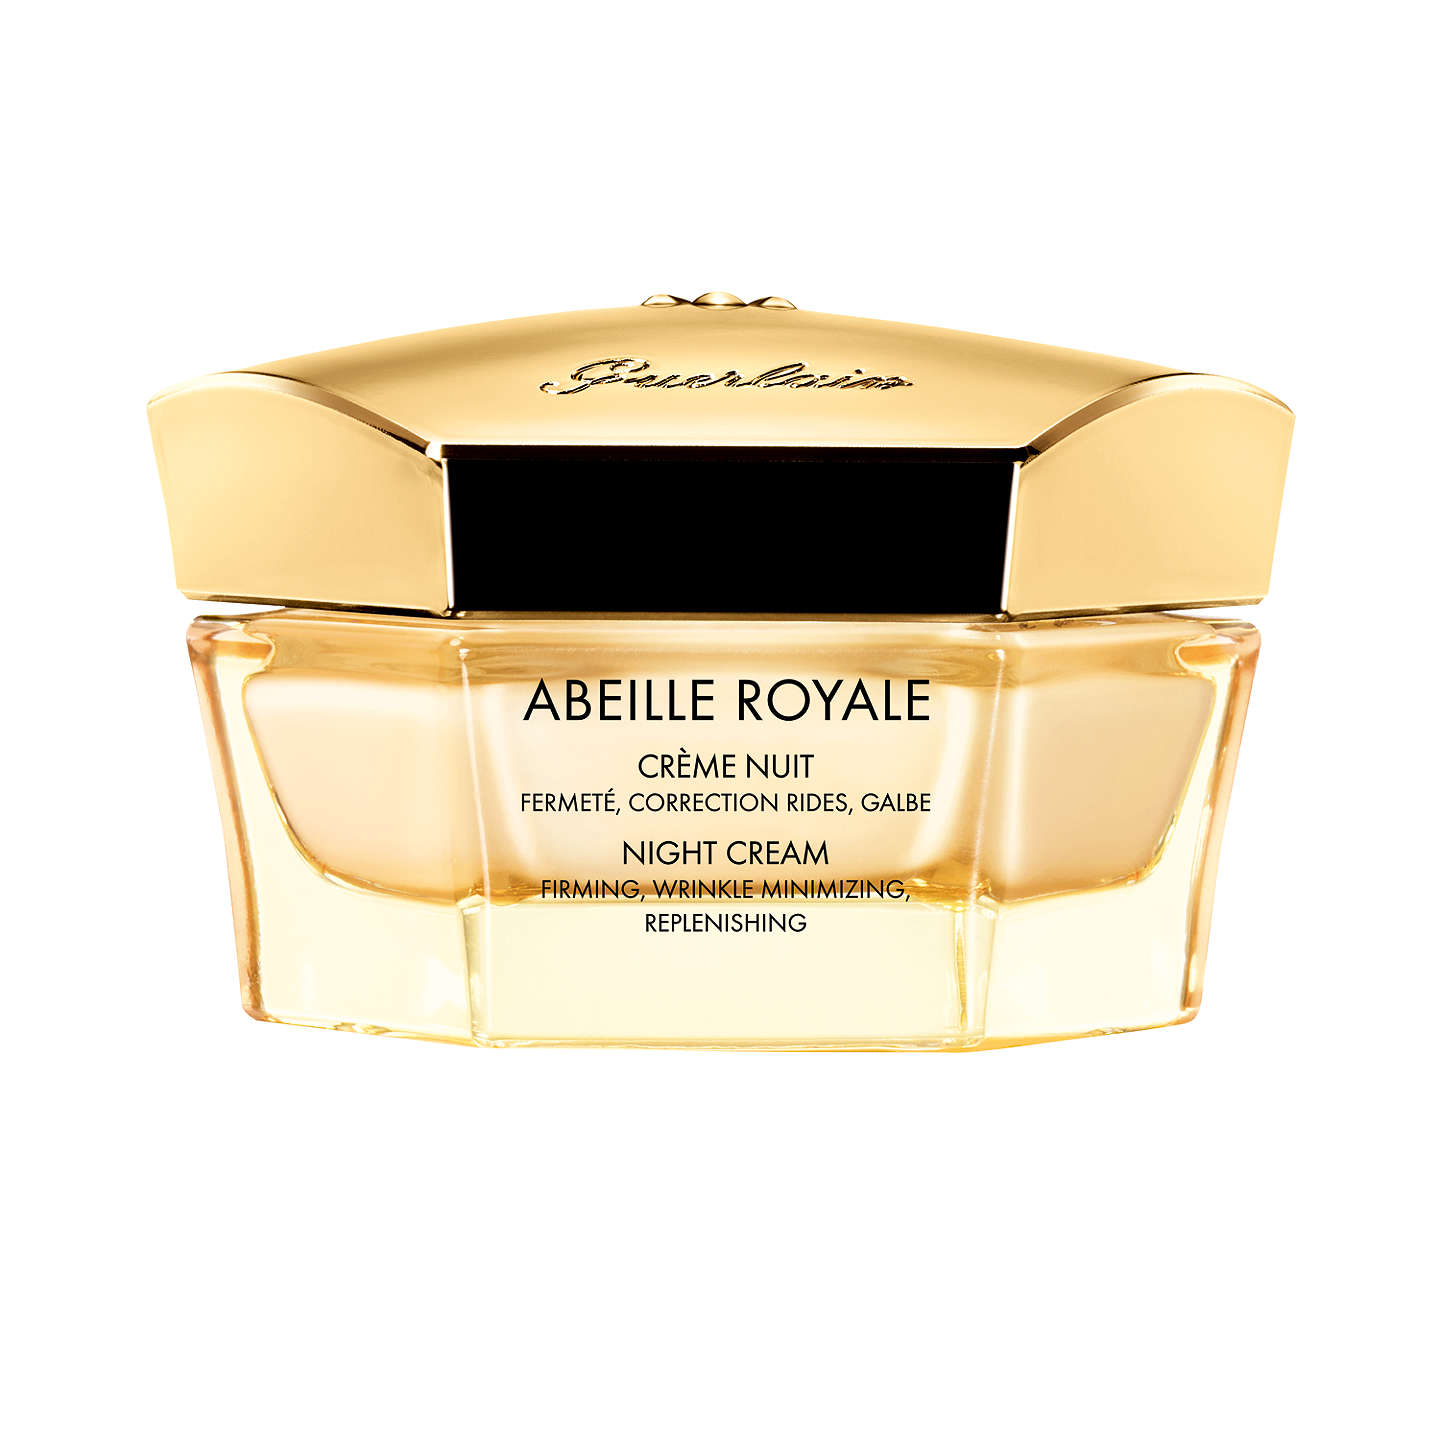 BuyGuerlain Abeille Royale Night Cream, 50ml Online at johnlewis.com